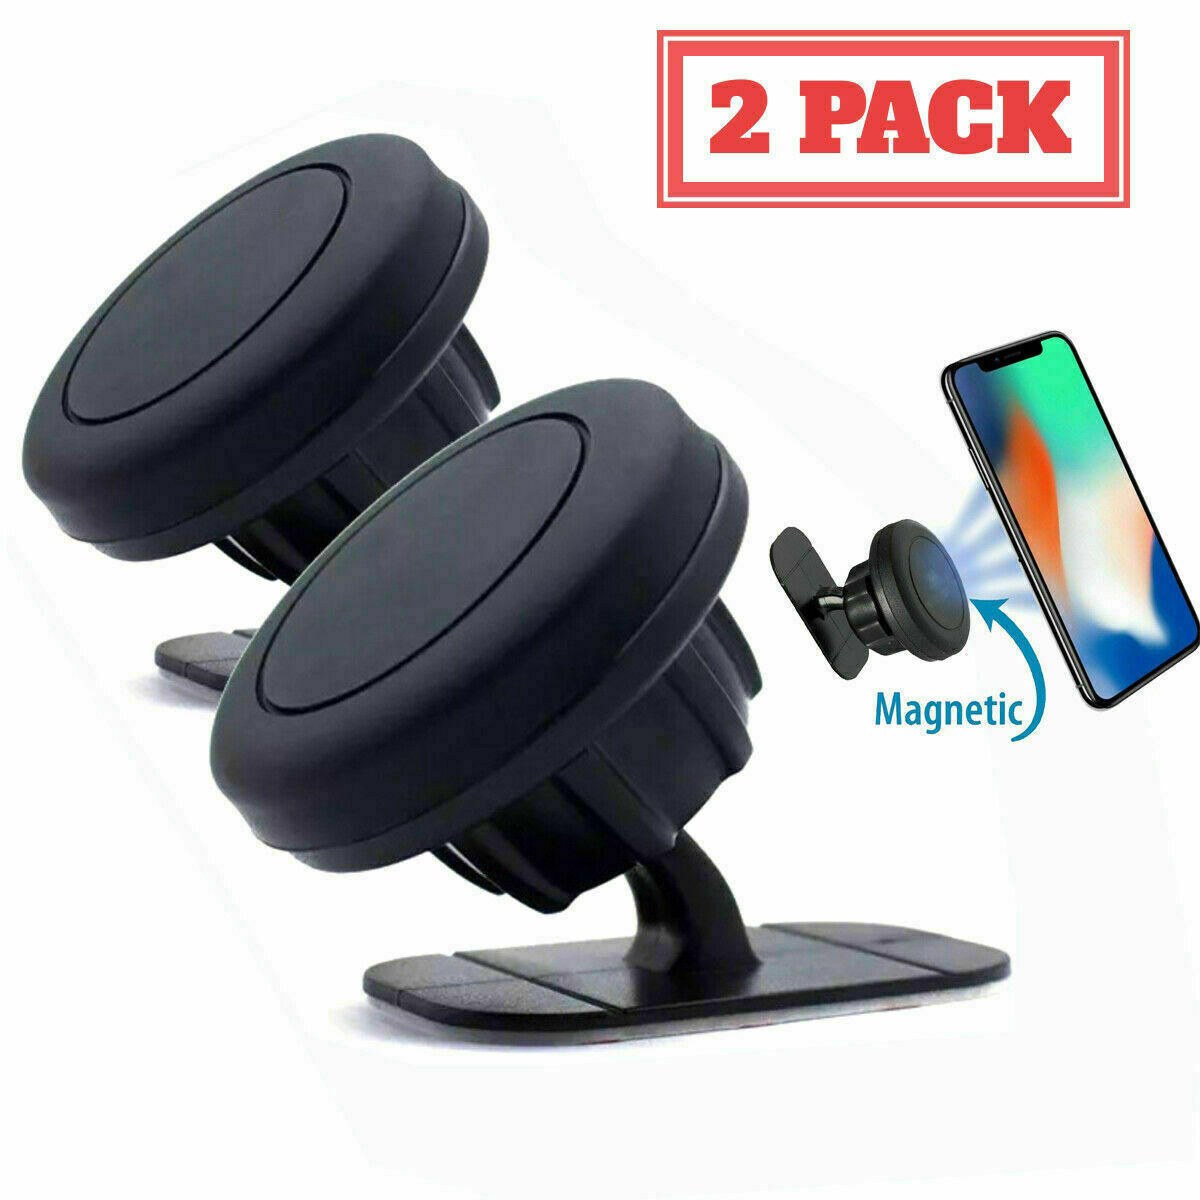 Magnetic 360° Gear Car Phone Holder Dashboard Rotation With Mounting Plate Mount Cell Phone Accessories